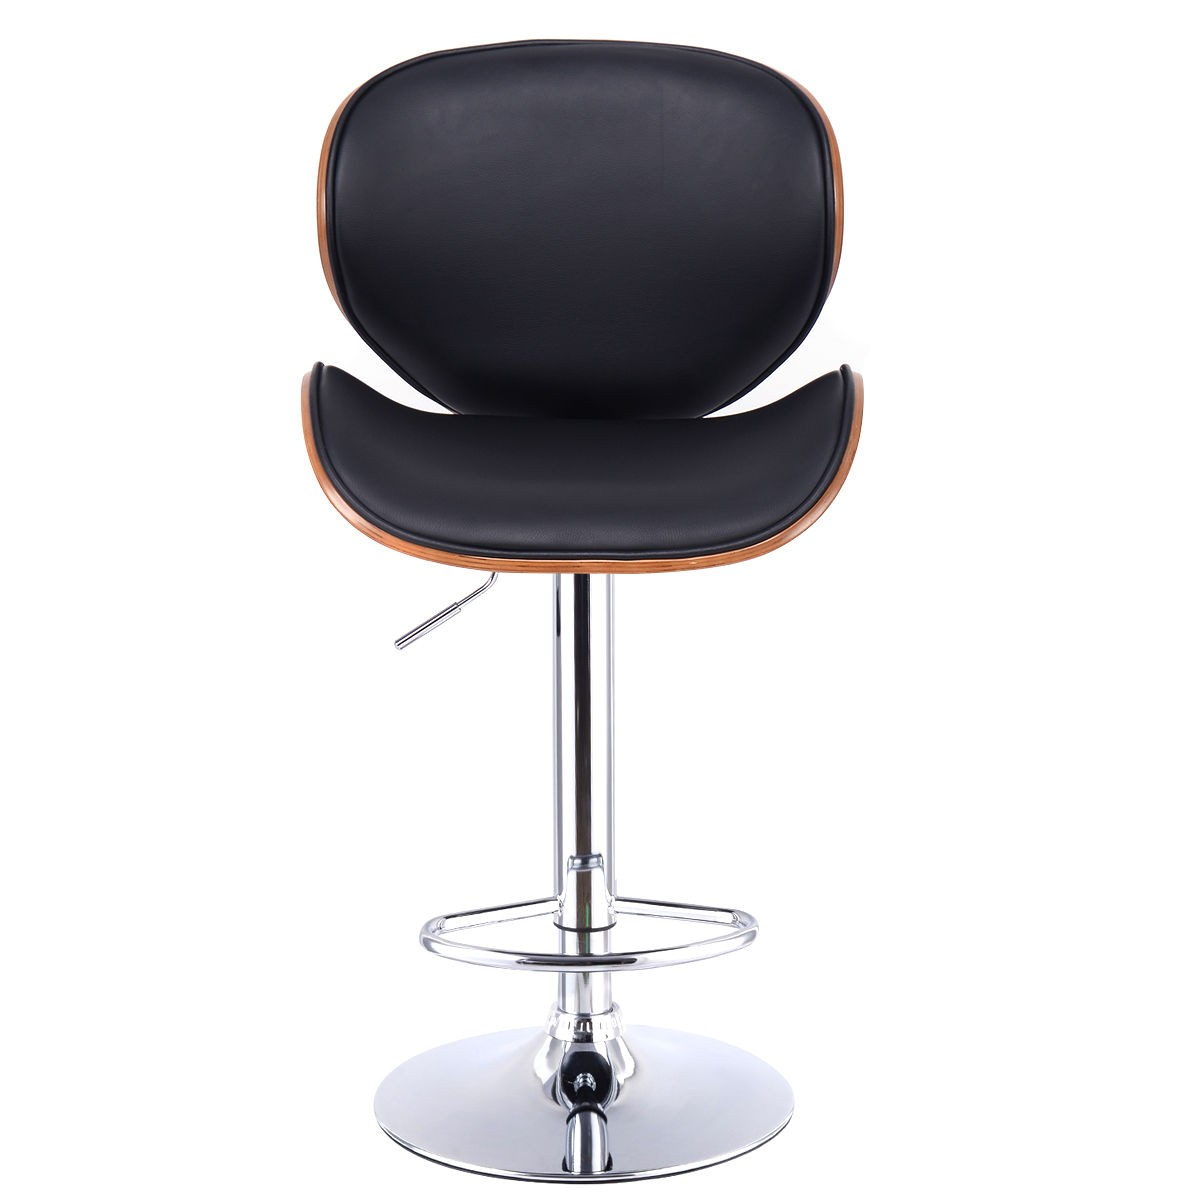 Lh Modern Adjustable Height Swivel Bentwood Cushioned Seat